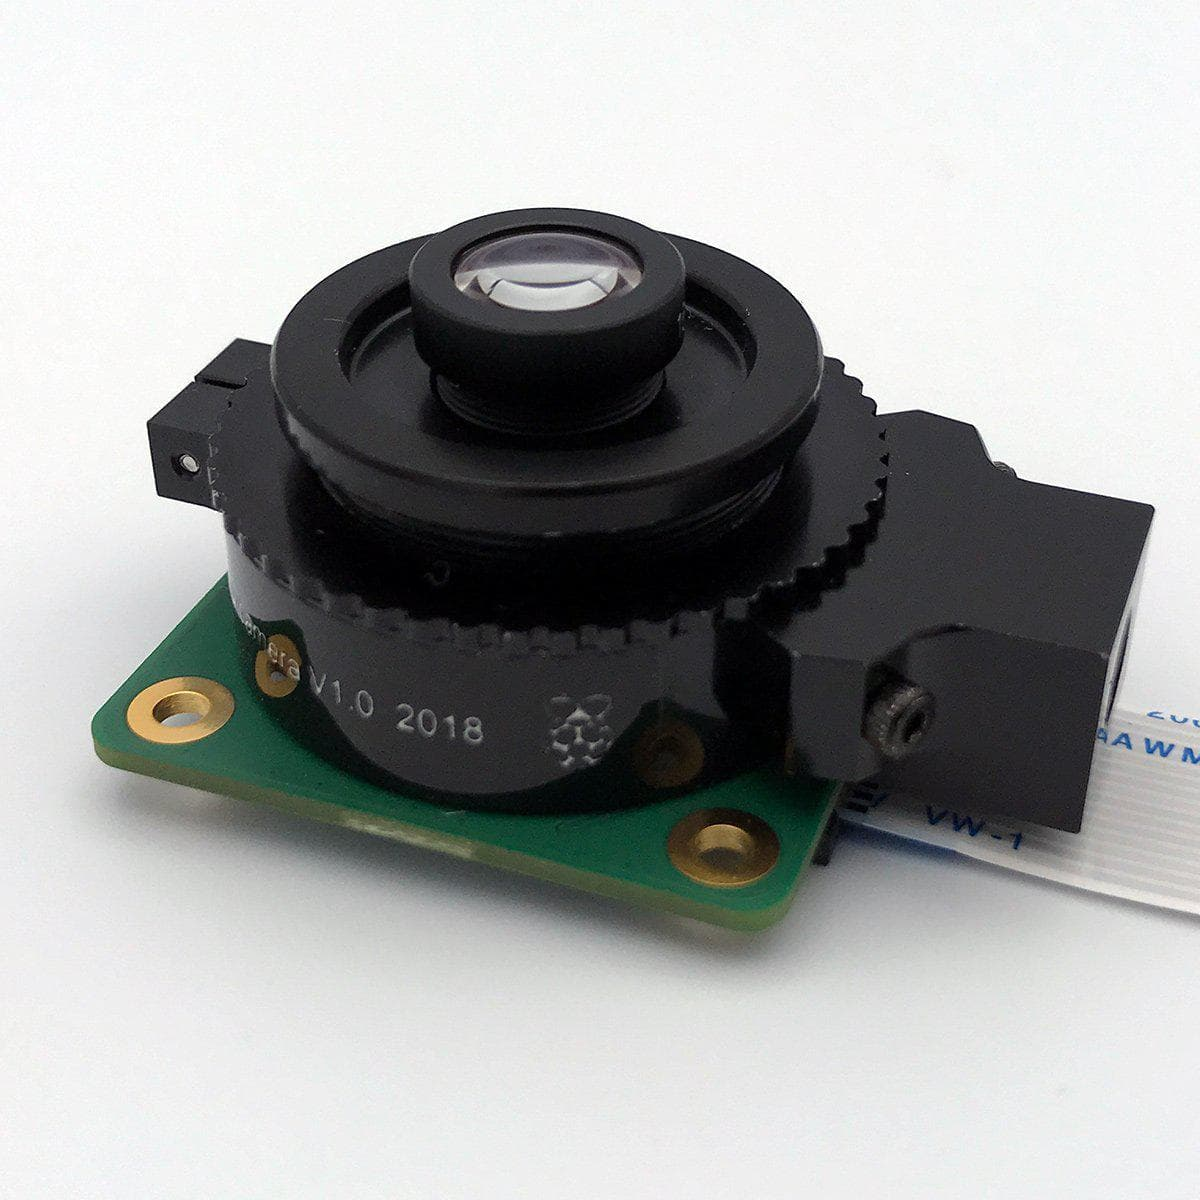 A 16mm M12 lens assembled with the Raspberry Pi High Quality Camera.